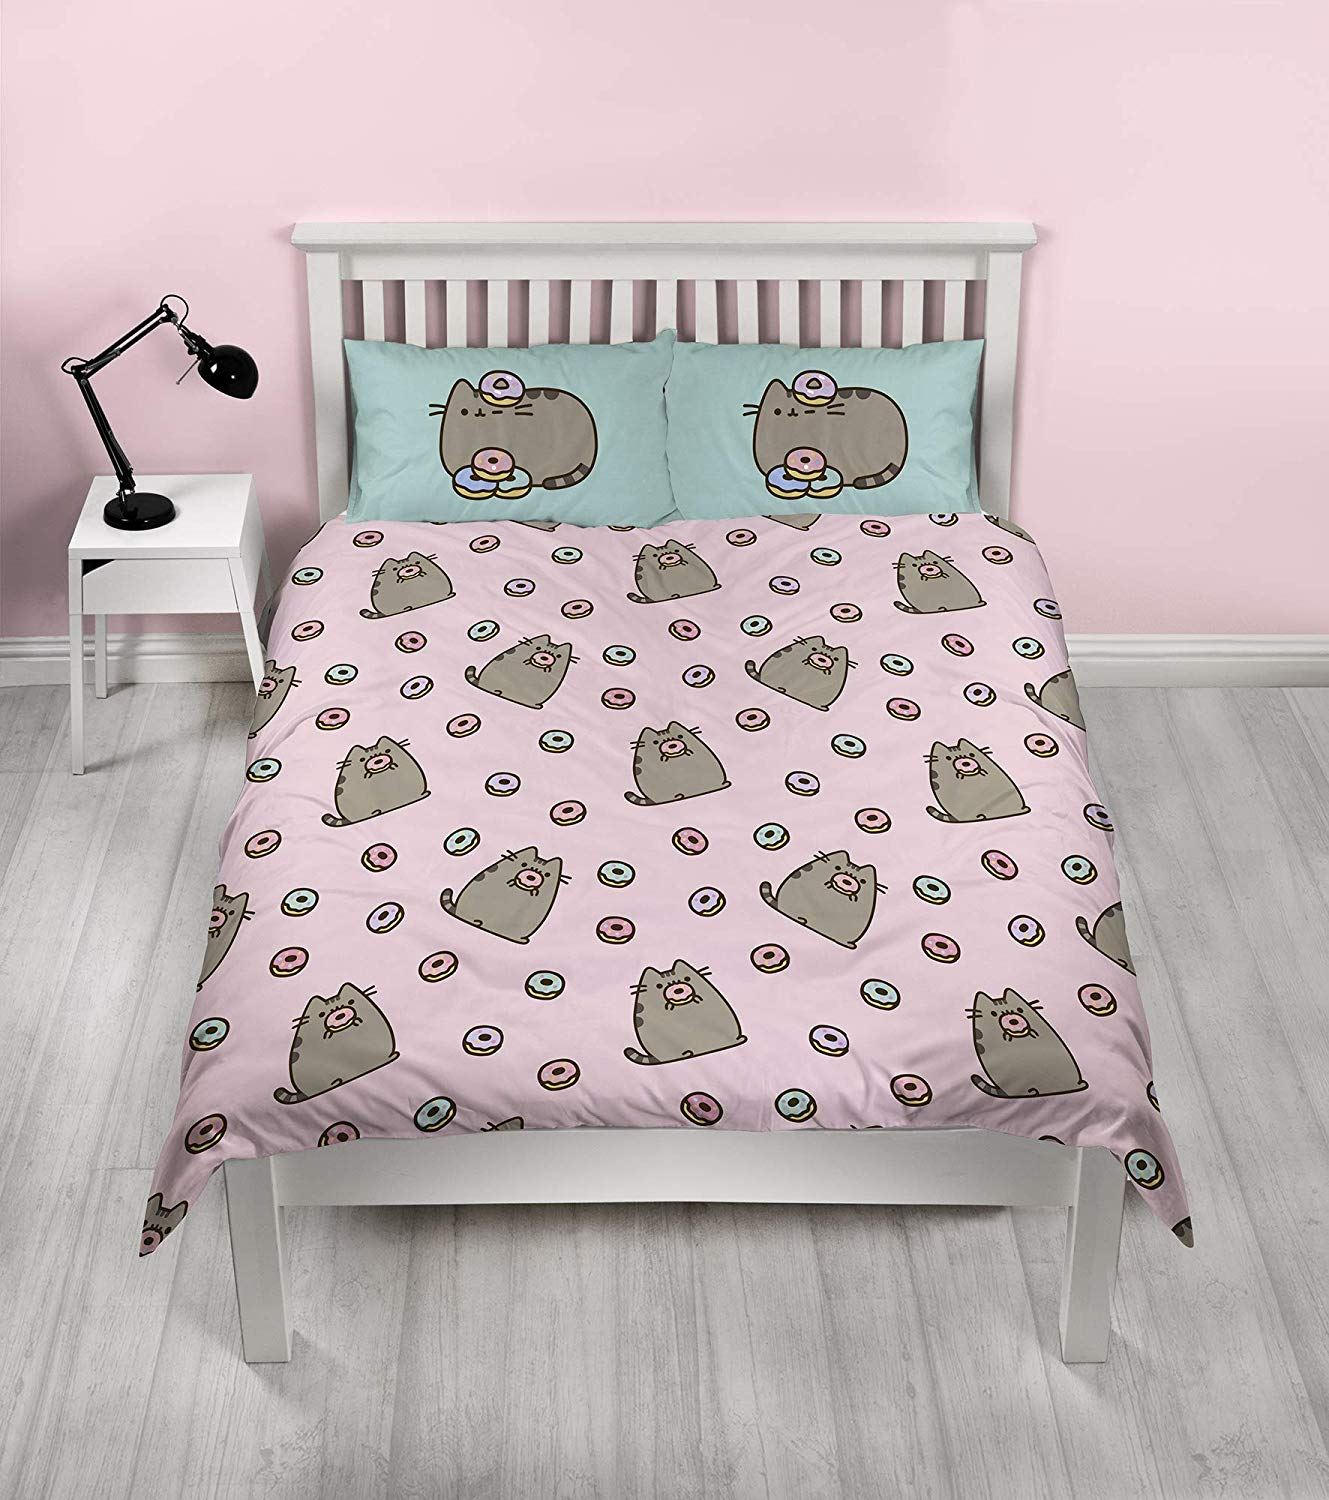 Pusheen-Doughnut-Single-Double-Reversible-Duvet-Cover-Bedding-Set thumbnail 3